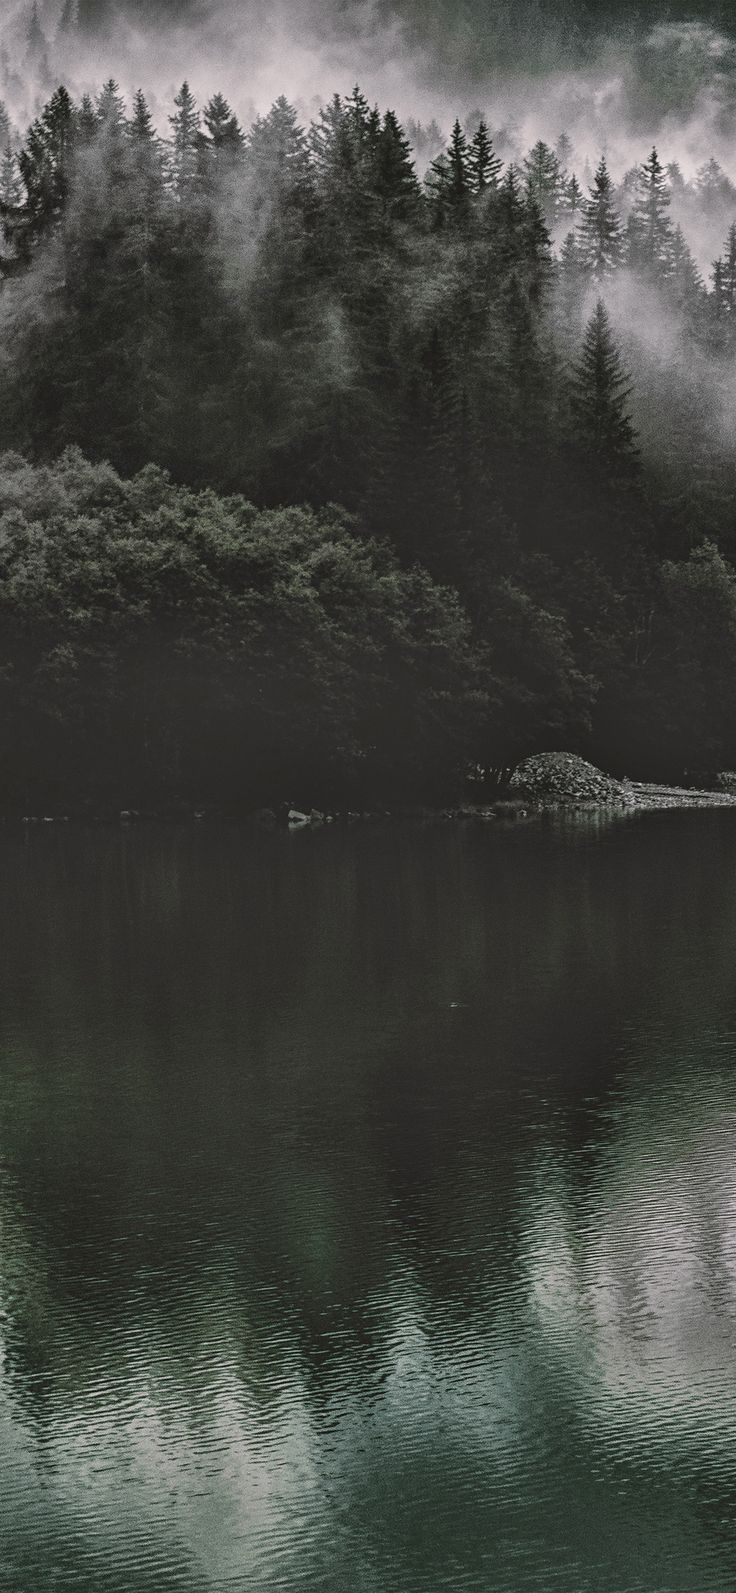 Nu46 Lake Mountain Water Dark Nature Via Iphonexpapers Com Wallpapers For Ipho Click Here T Forest Wallpaper Iphone Nature Wallpaper Dark Wallpaper Iphone